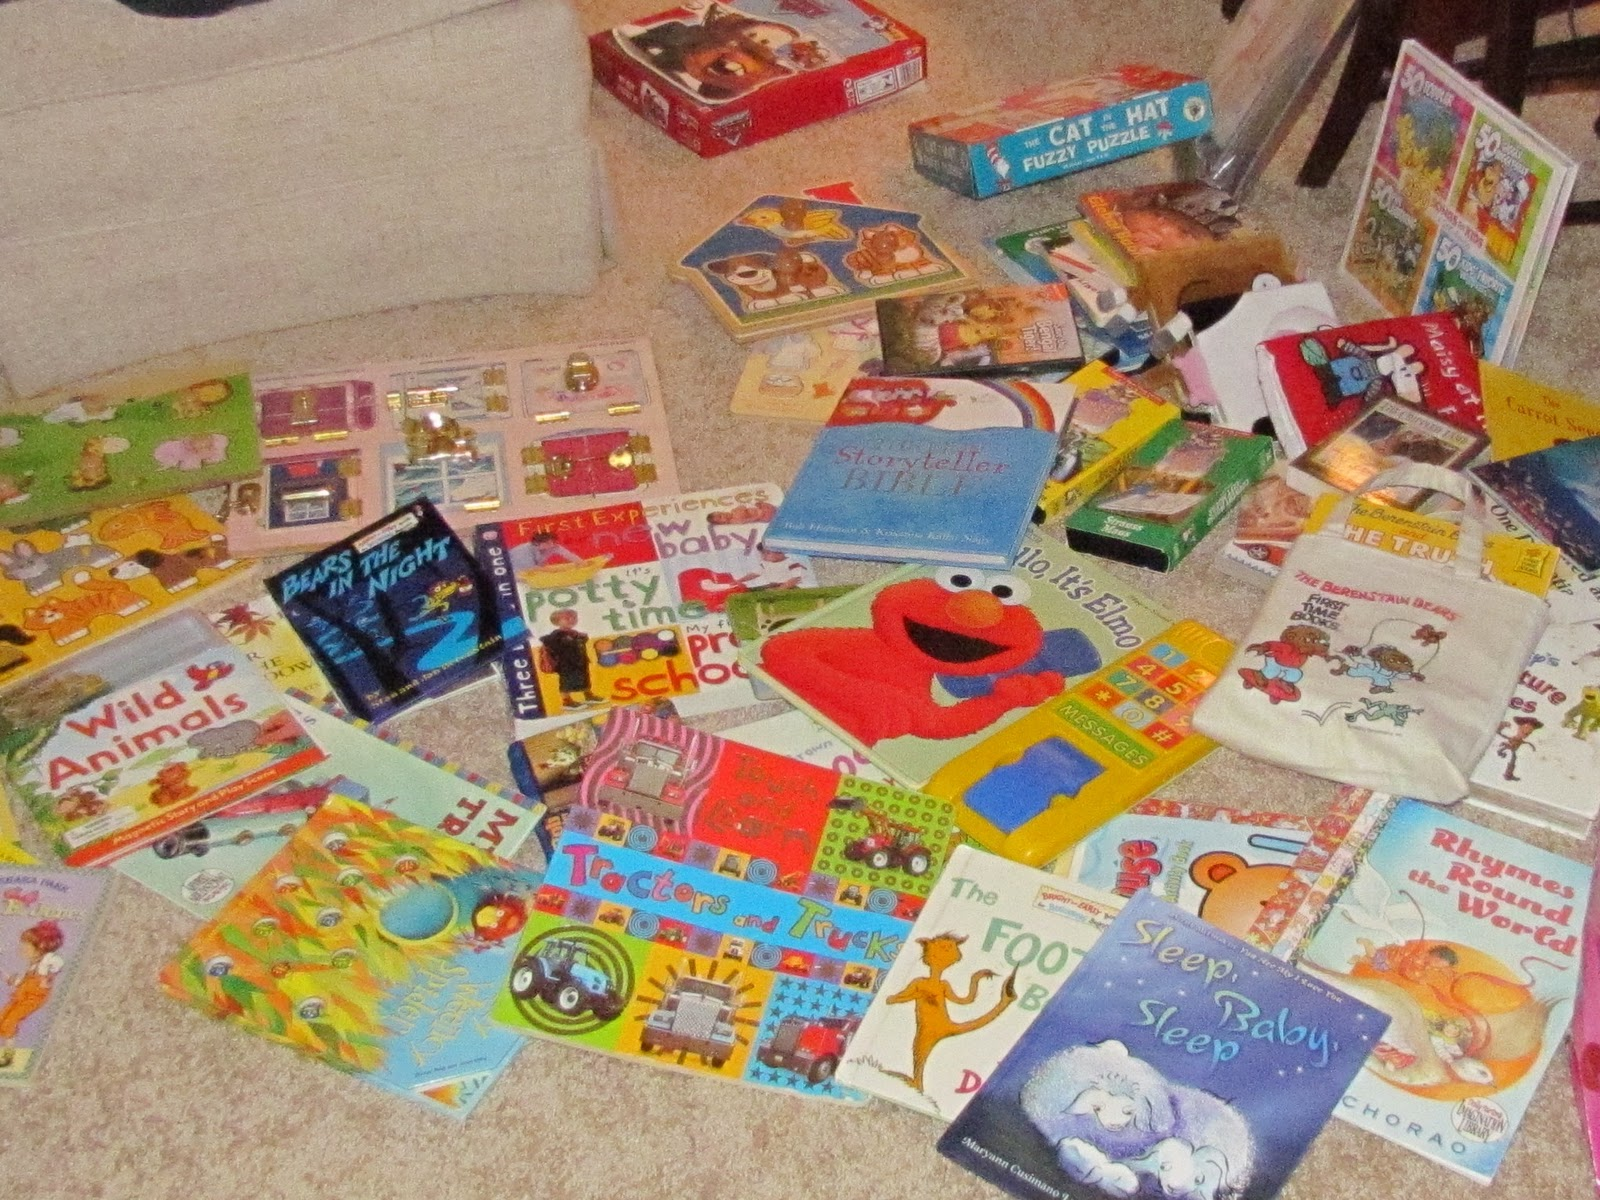 Save Money at Christmas Throw a Toy Swap